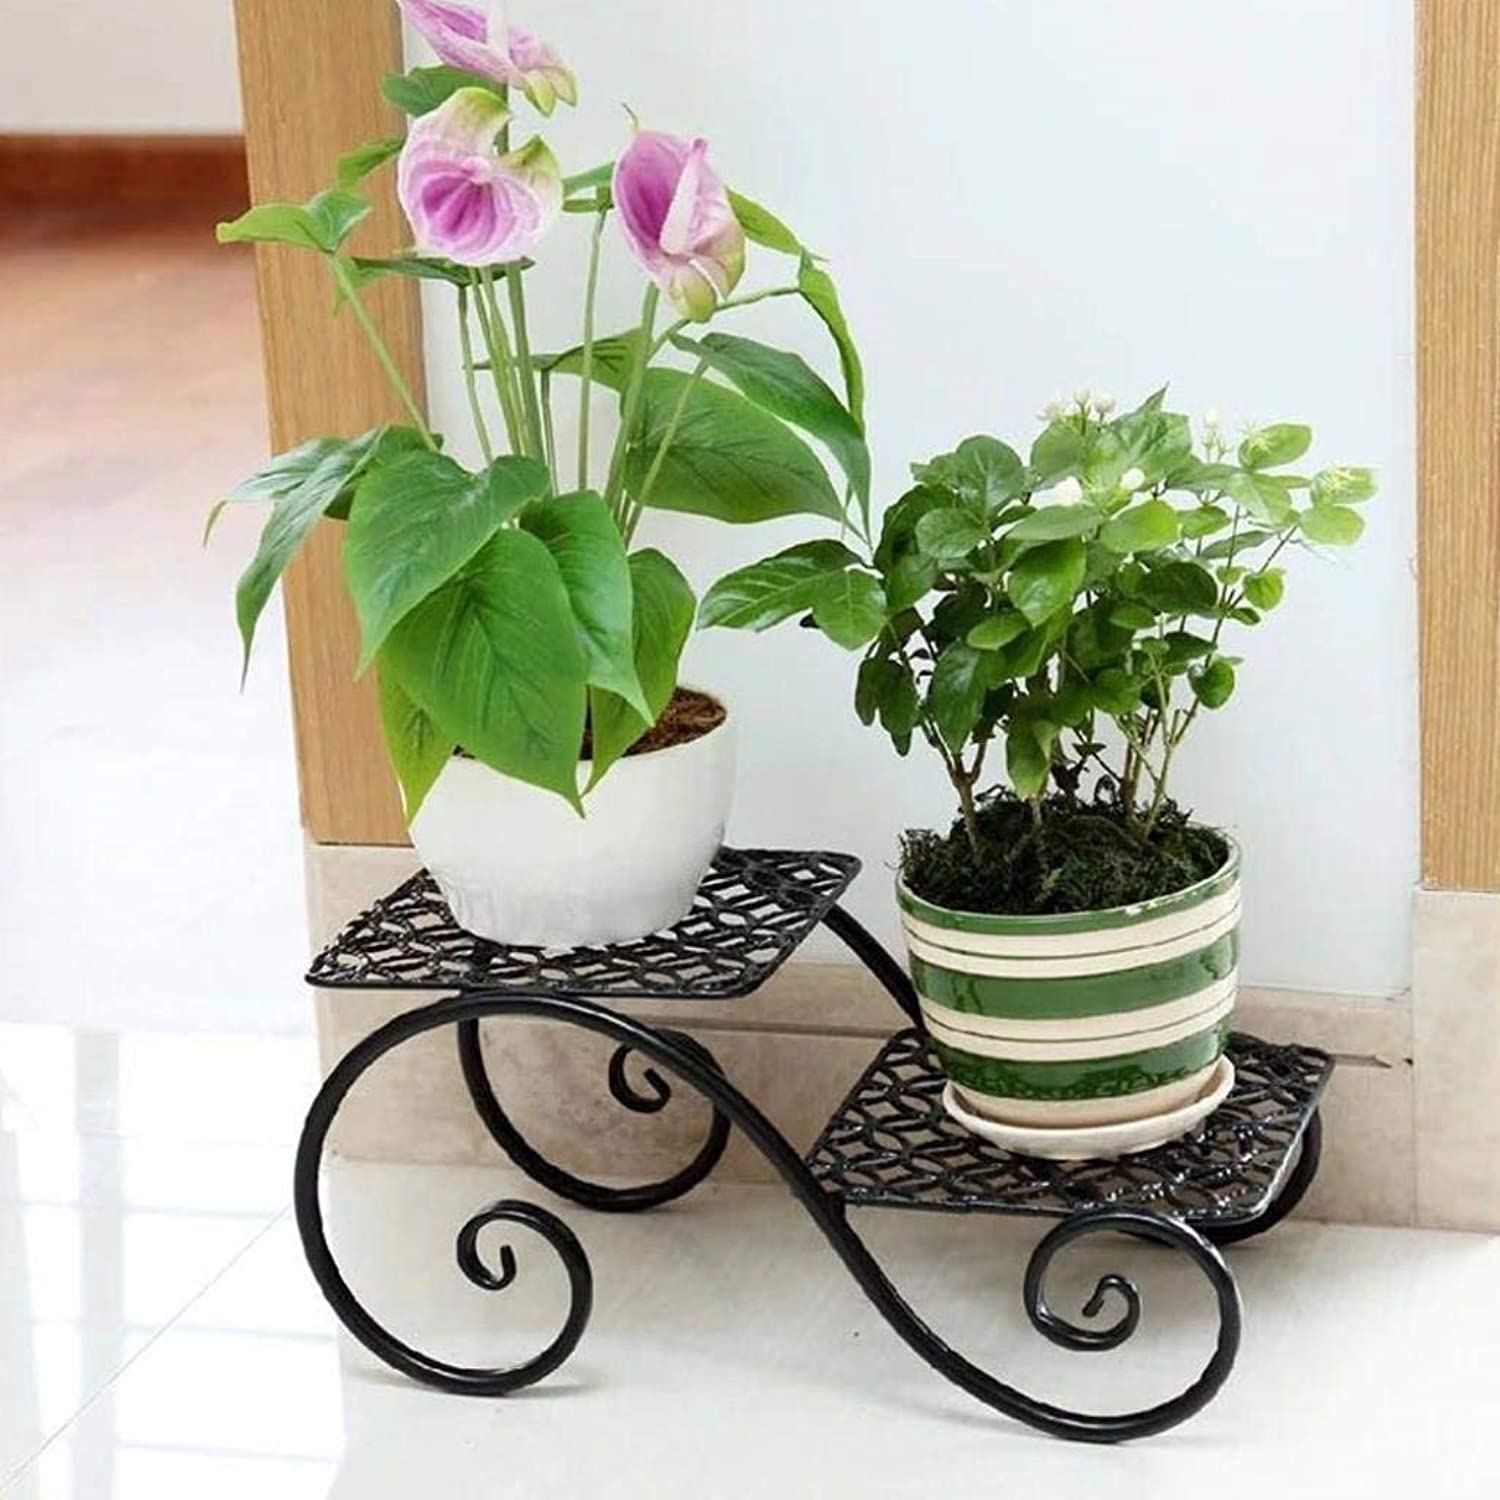 Flower Frame Wrought Iron Simple Plant Storage Rack Balcony Living Room Room Flower Stand Rack (color   Black)